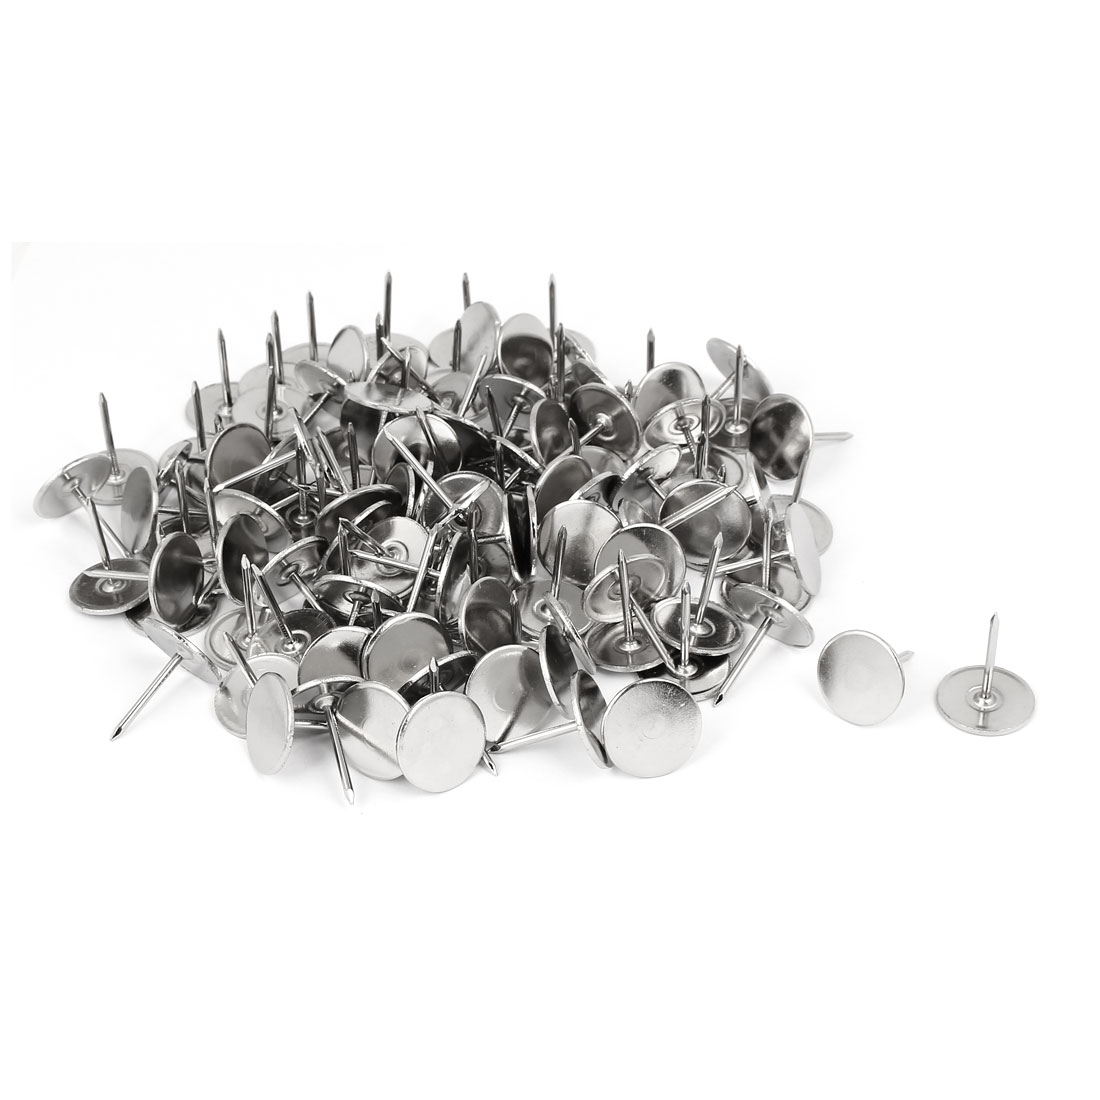 Furniture Metal Round Flat Head Upholstery Tack Nail Silver Tone 19mm Dia 120pcs